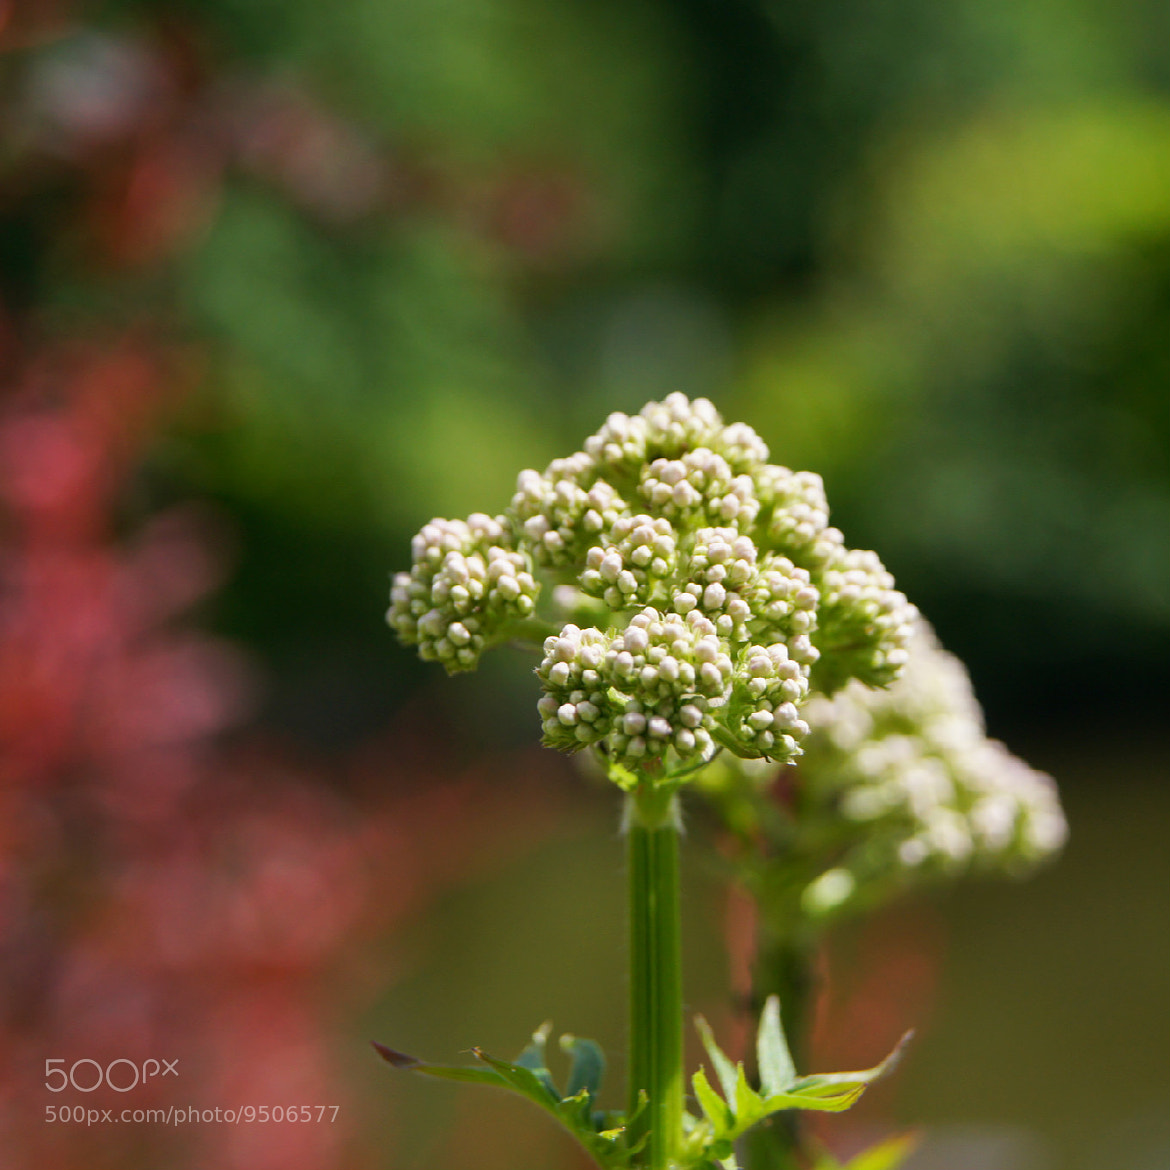 Photograph The Little White Buds by Adhib M on 500px